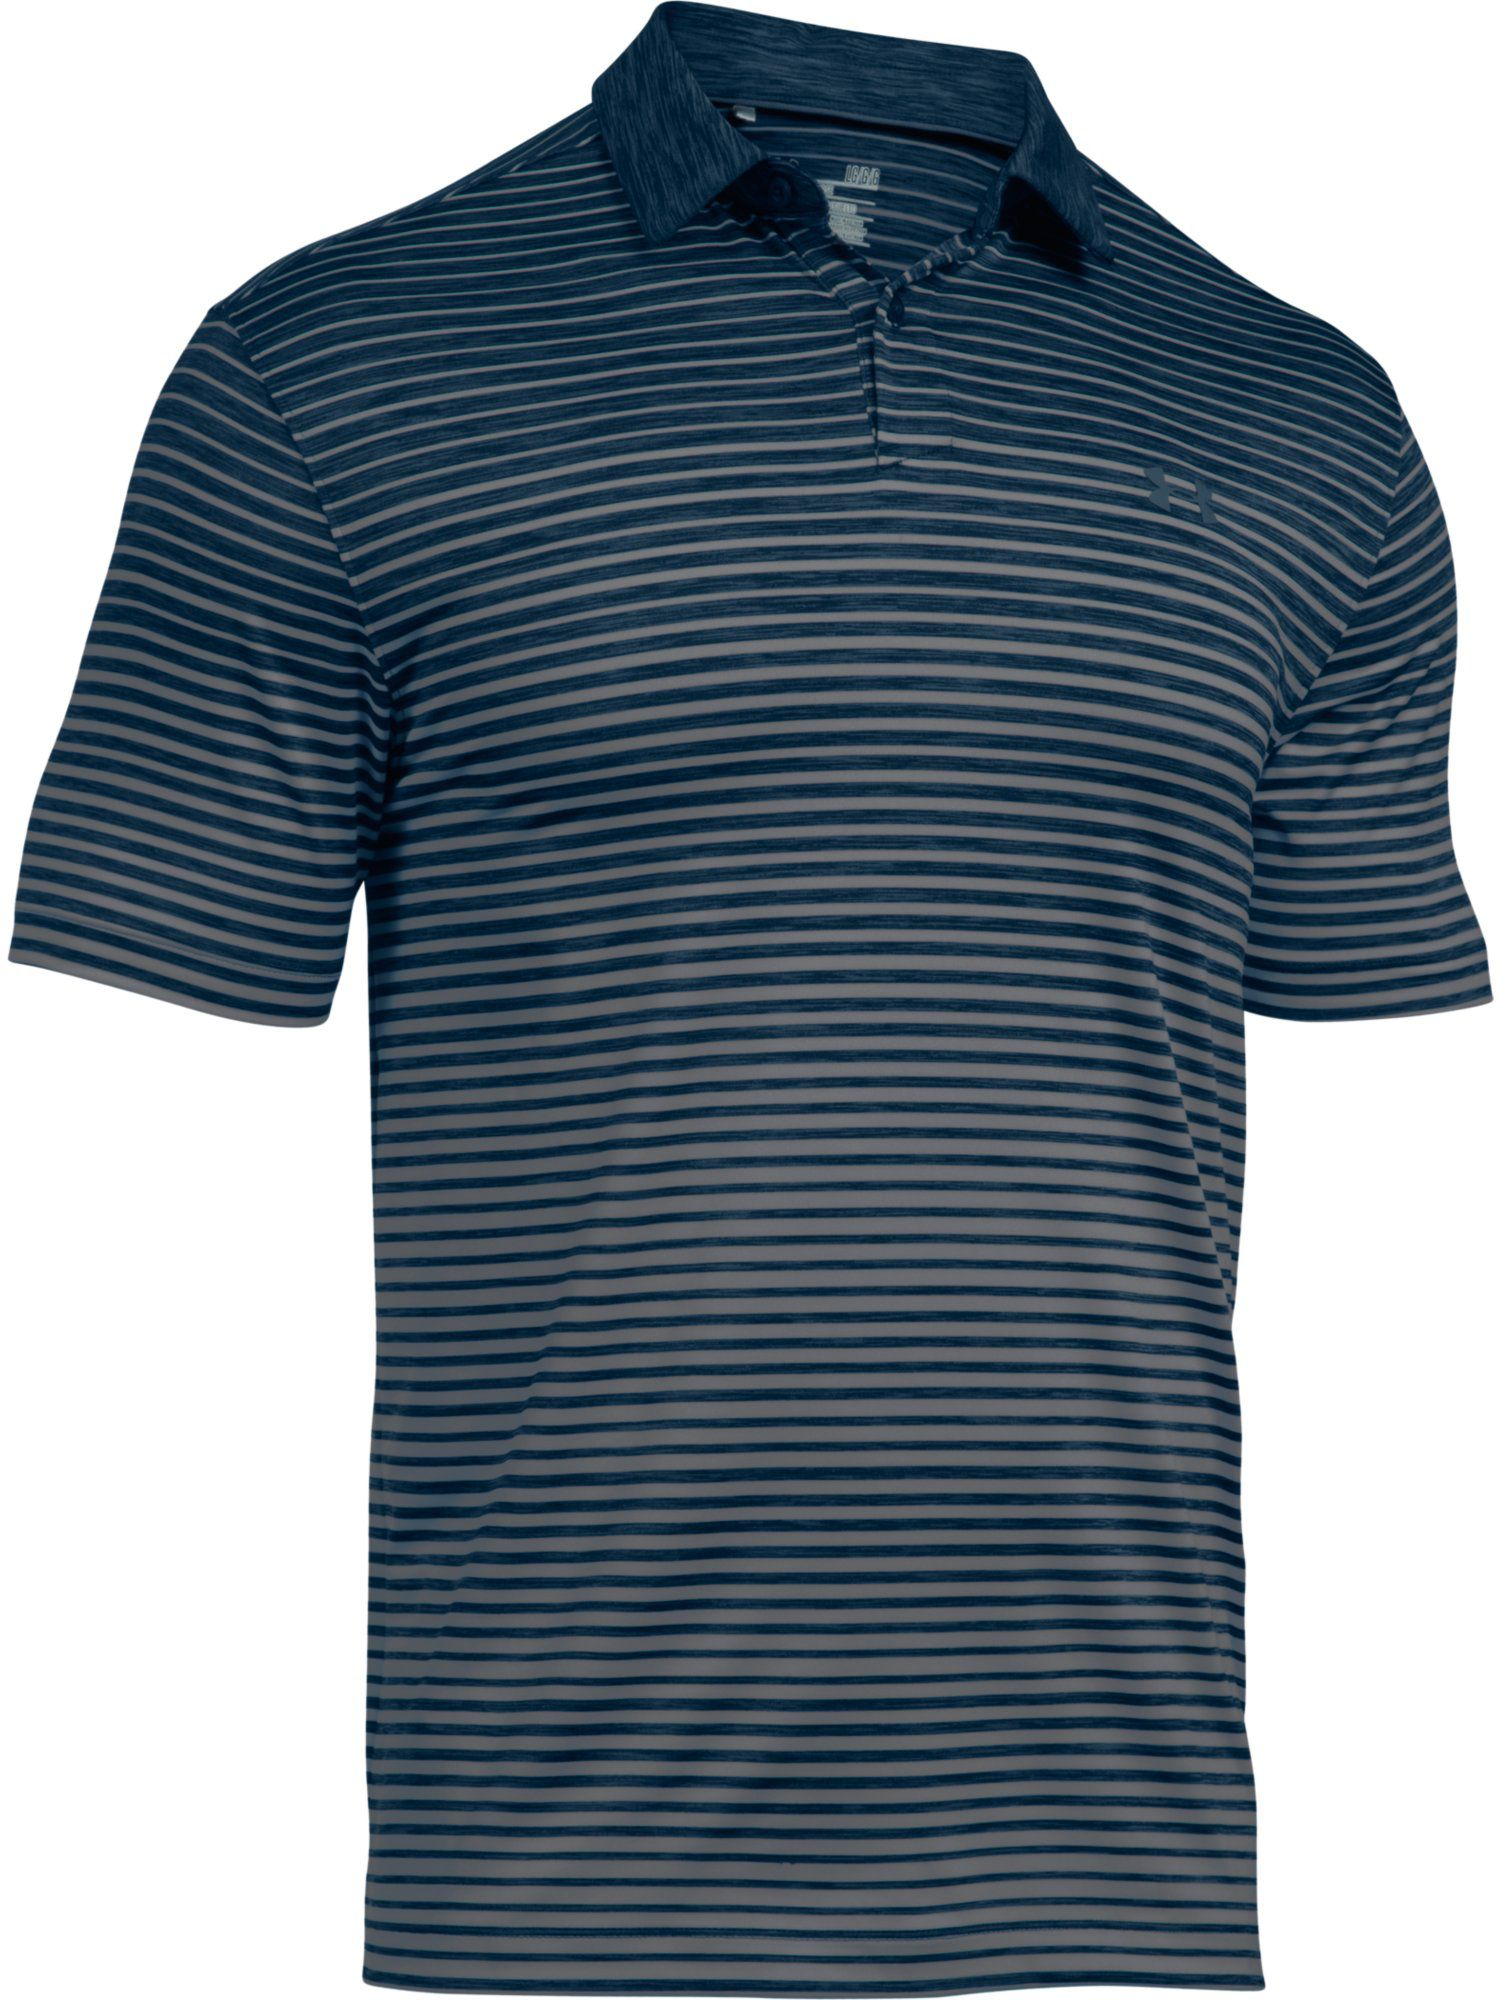 Men's Under Armour Trajectory Stripe Polo, Dark Blue